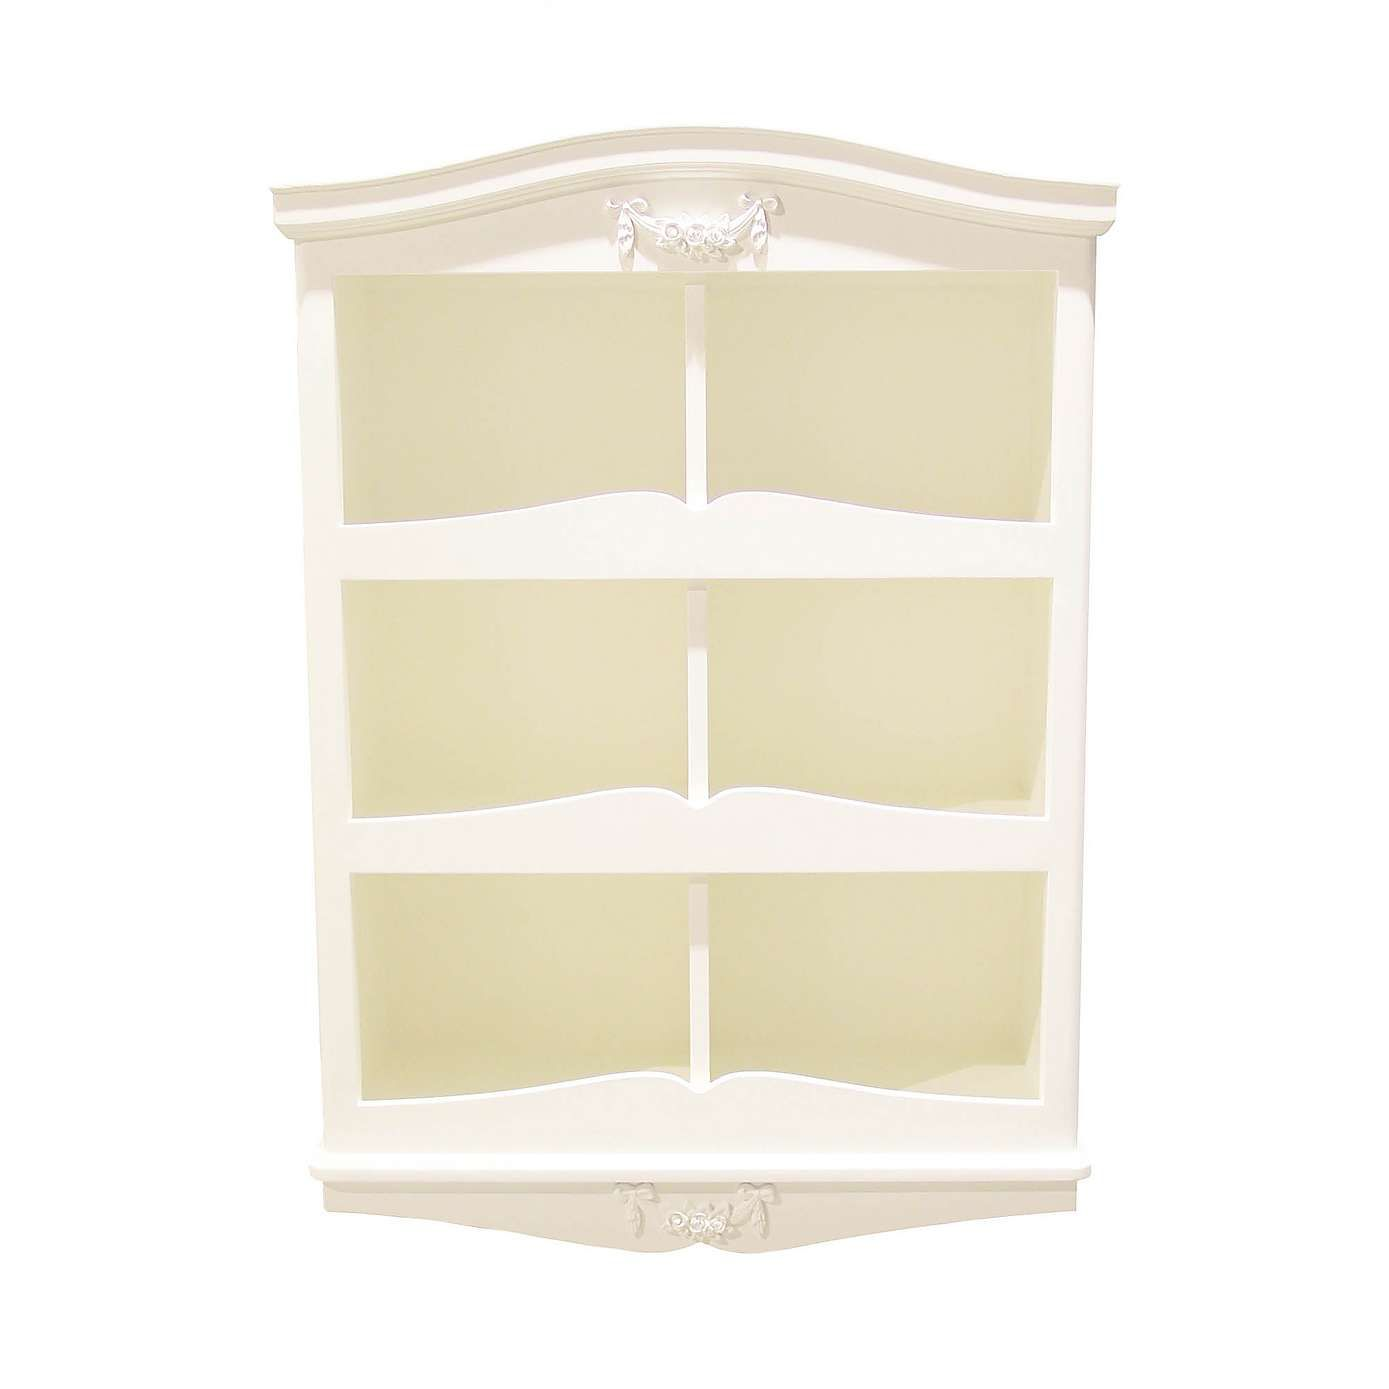 Toulouse Wall Storage Dunelm For My Little Palace Pinterest  # Muebles Toulouse